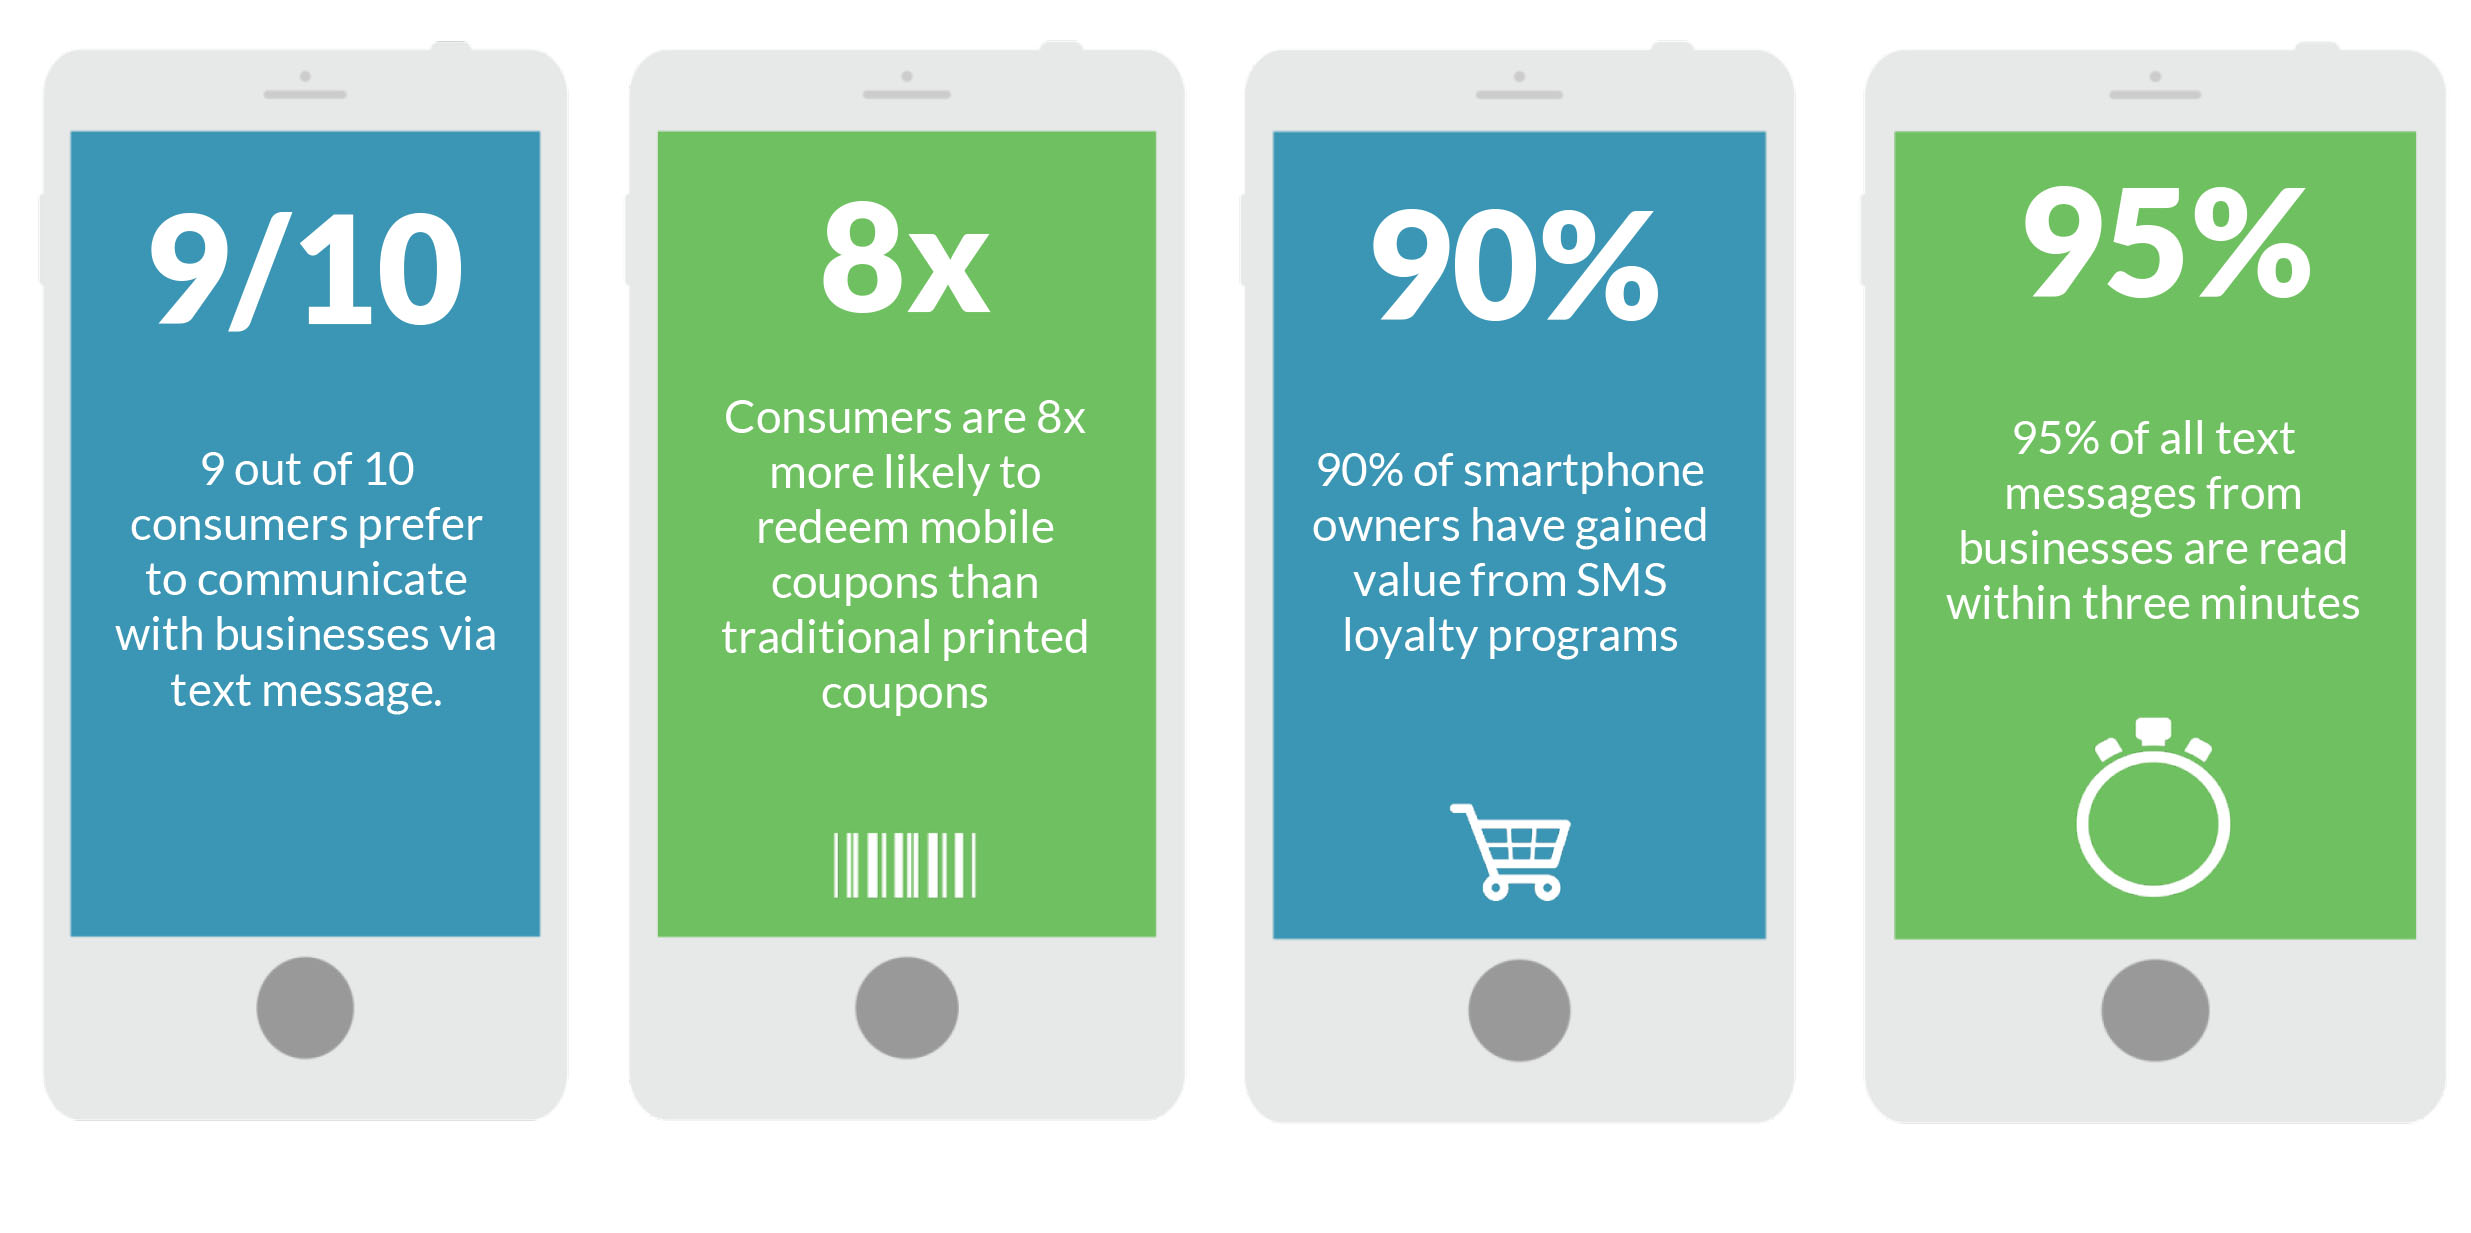 Statistics showing the impact of SMS marketing on consumers